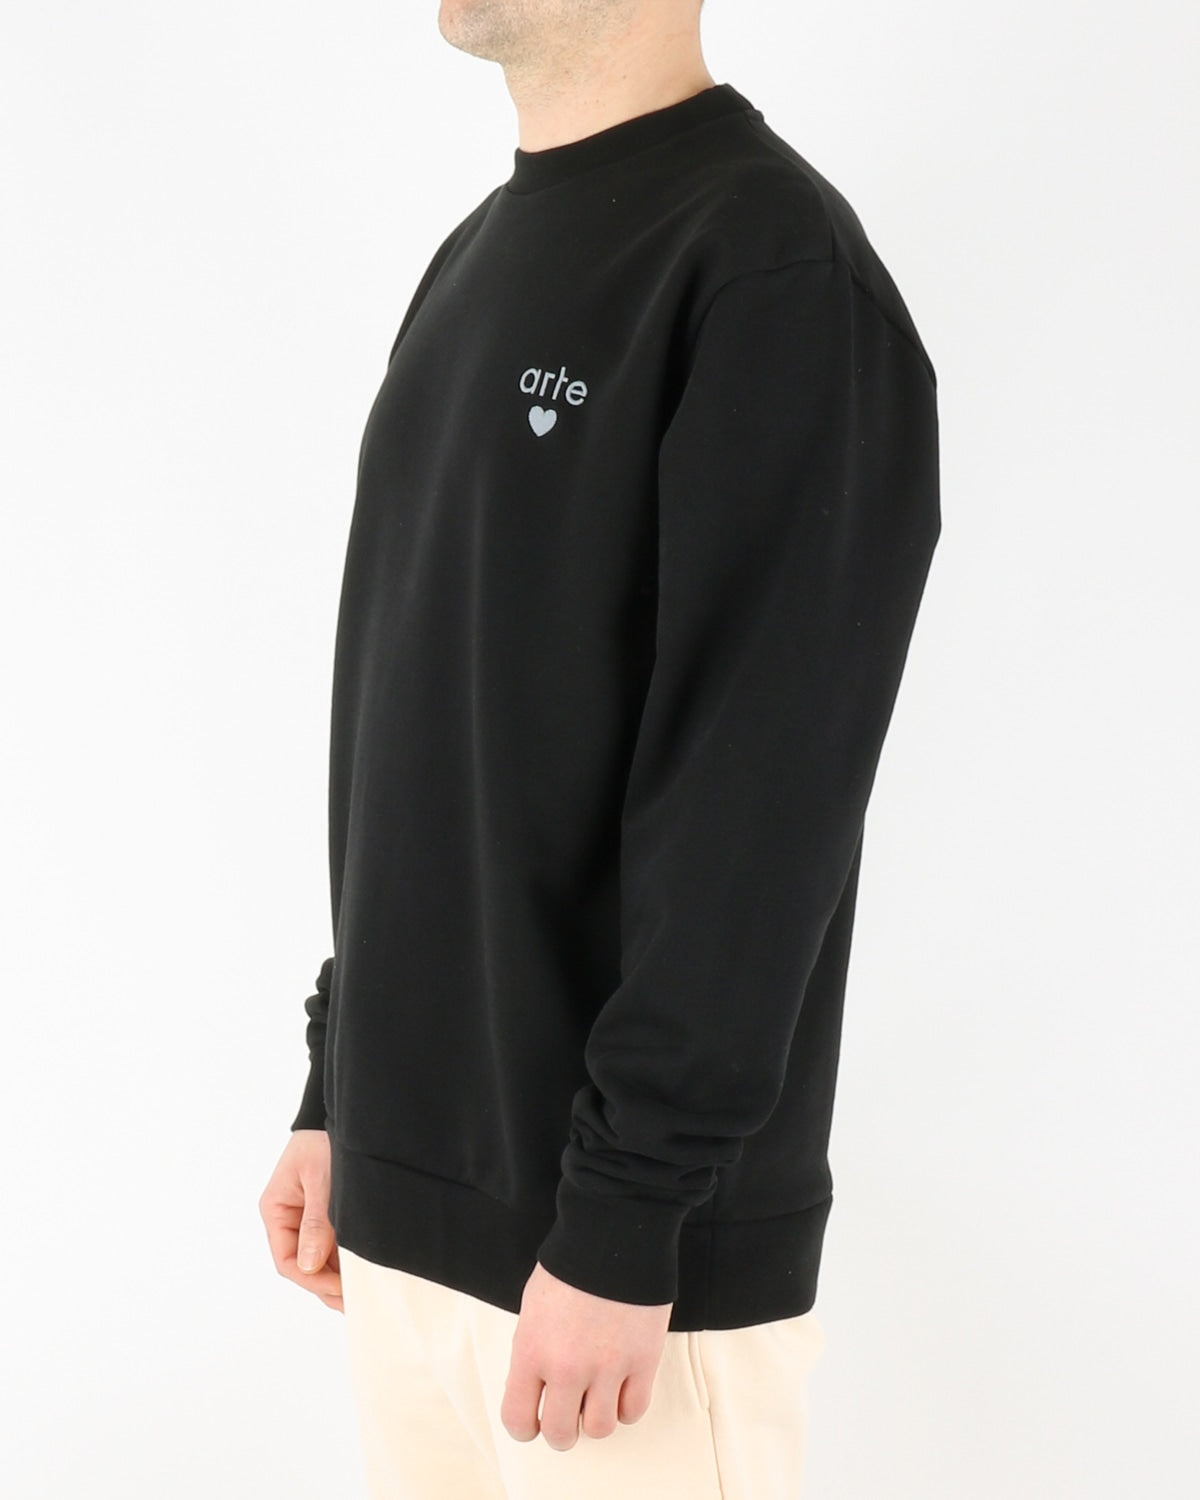 arte_colson heart sweatshirt_black_2_3